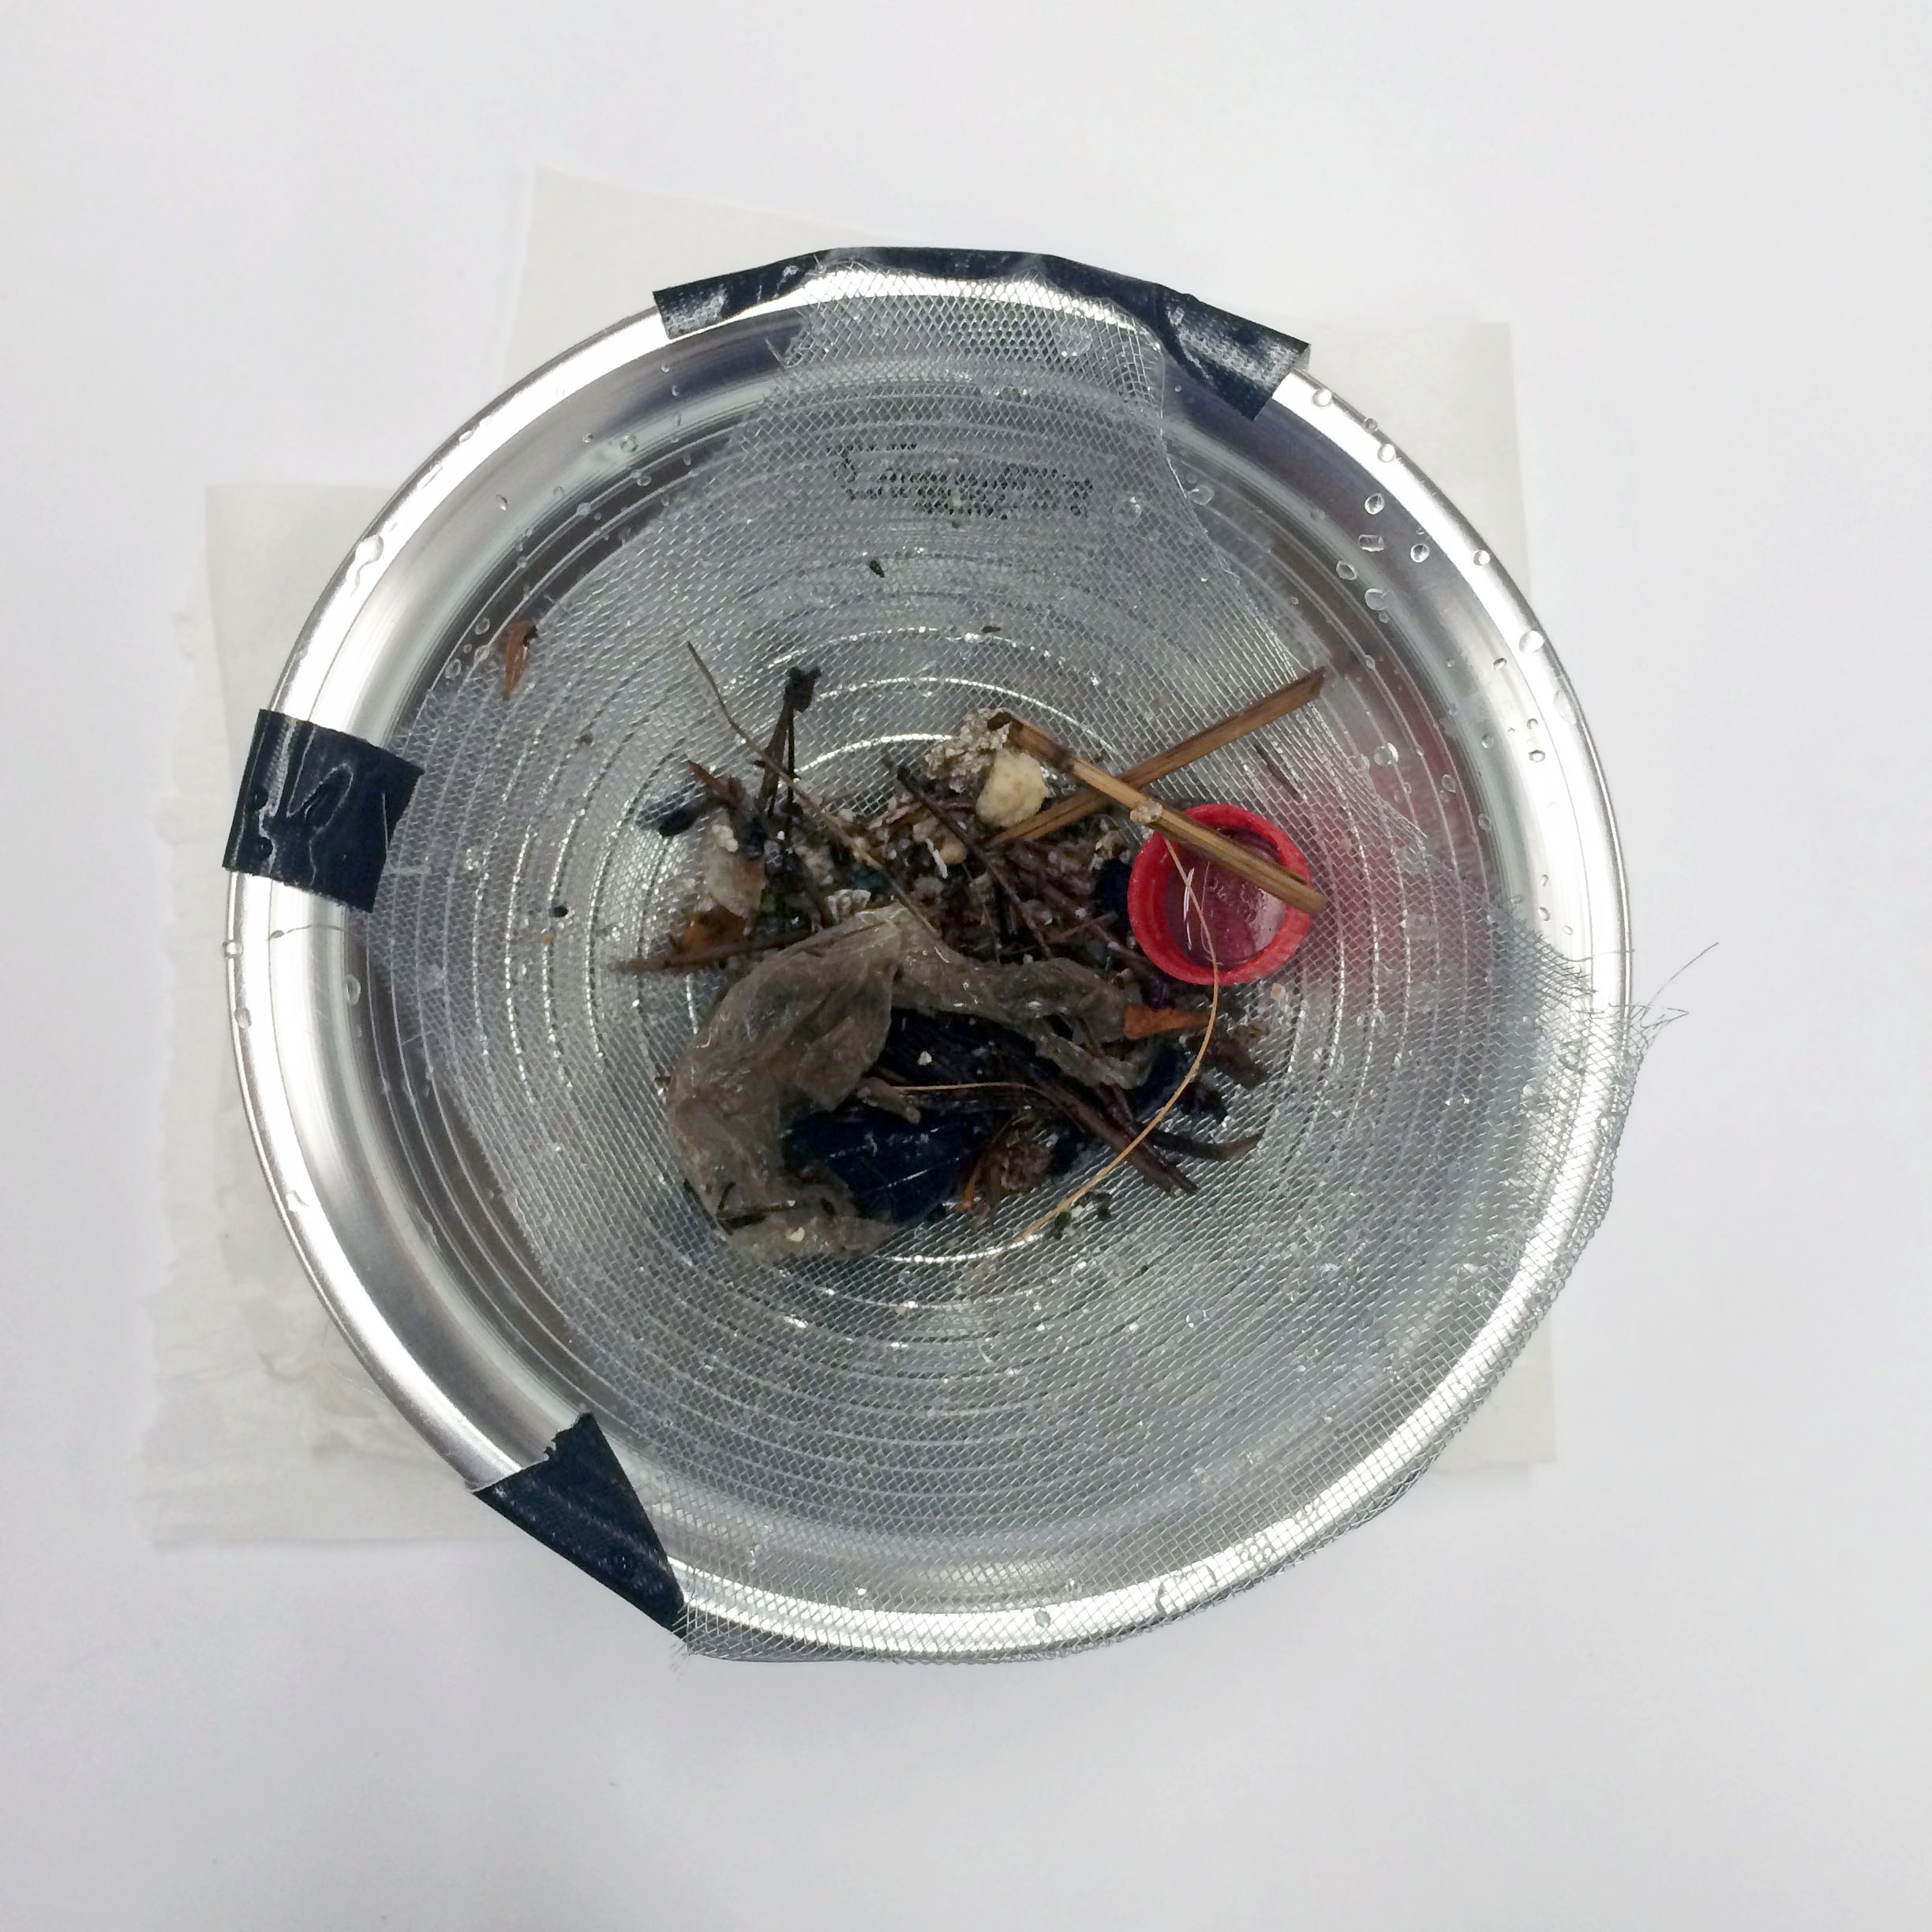 - Let your the sample dry overnight on the mesh strainer.